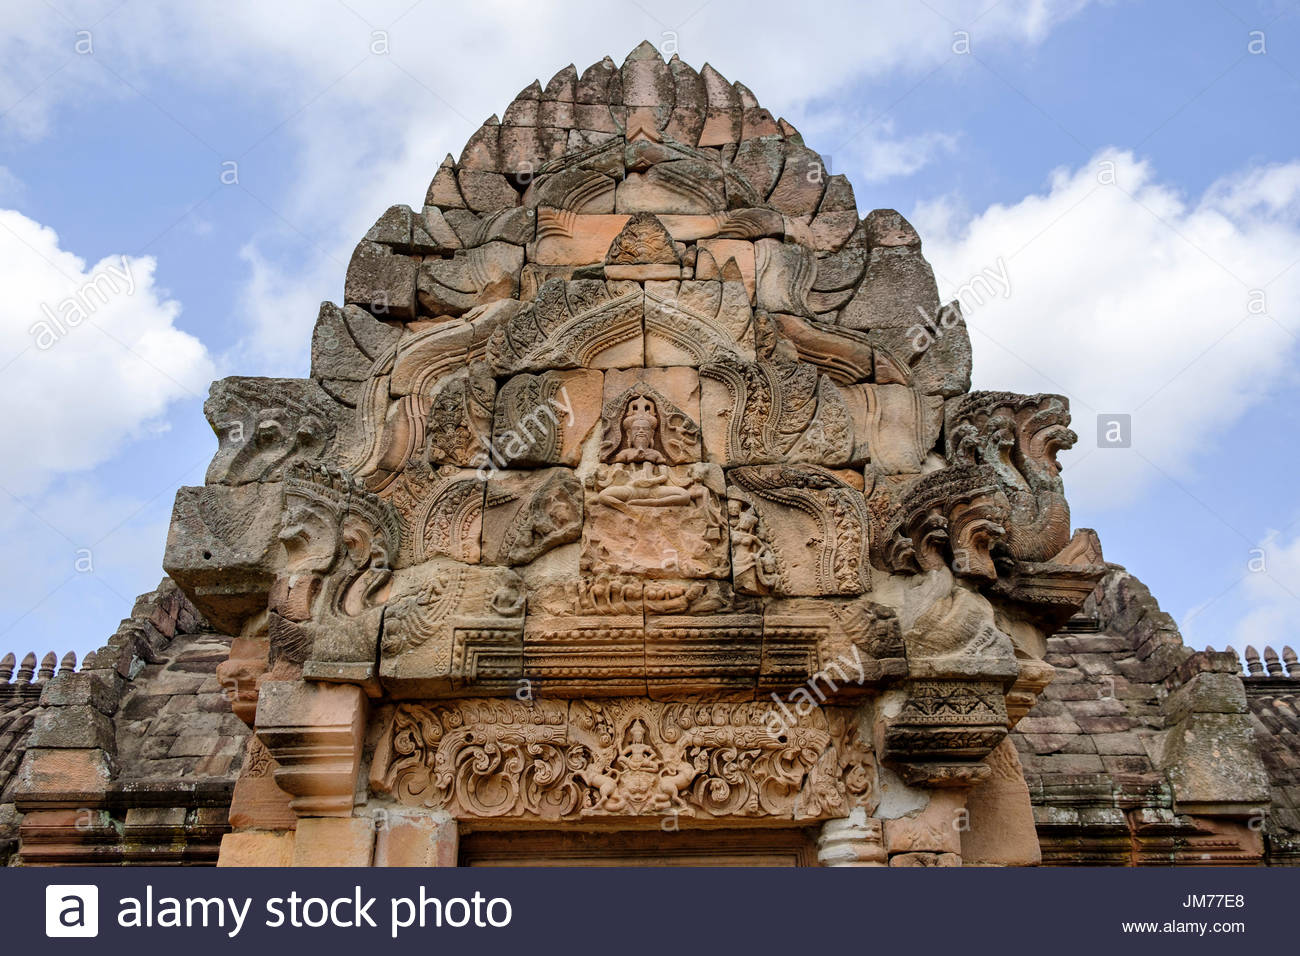 Khmer-style reliefs on lintel and pediment of the eastern archway, Phanom Rung Historical Park, Buriram Province, Thailand. - Stock Image